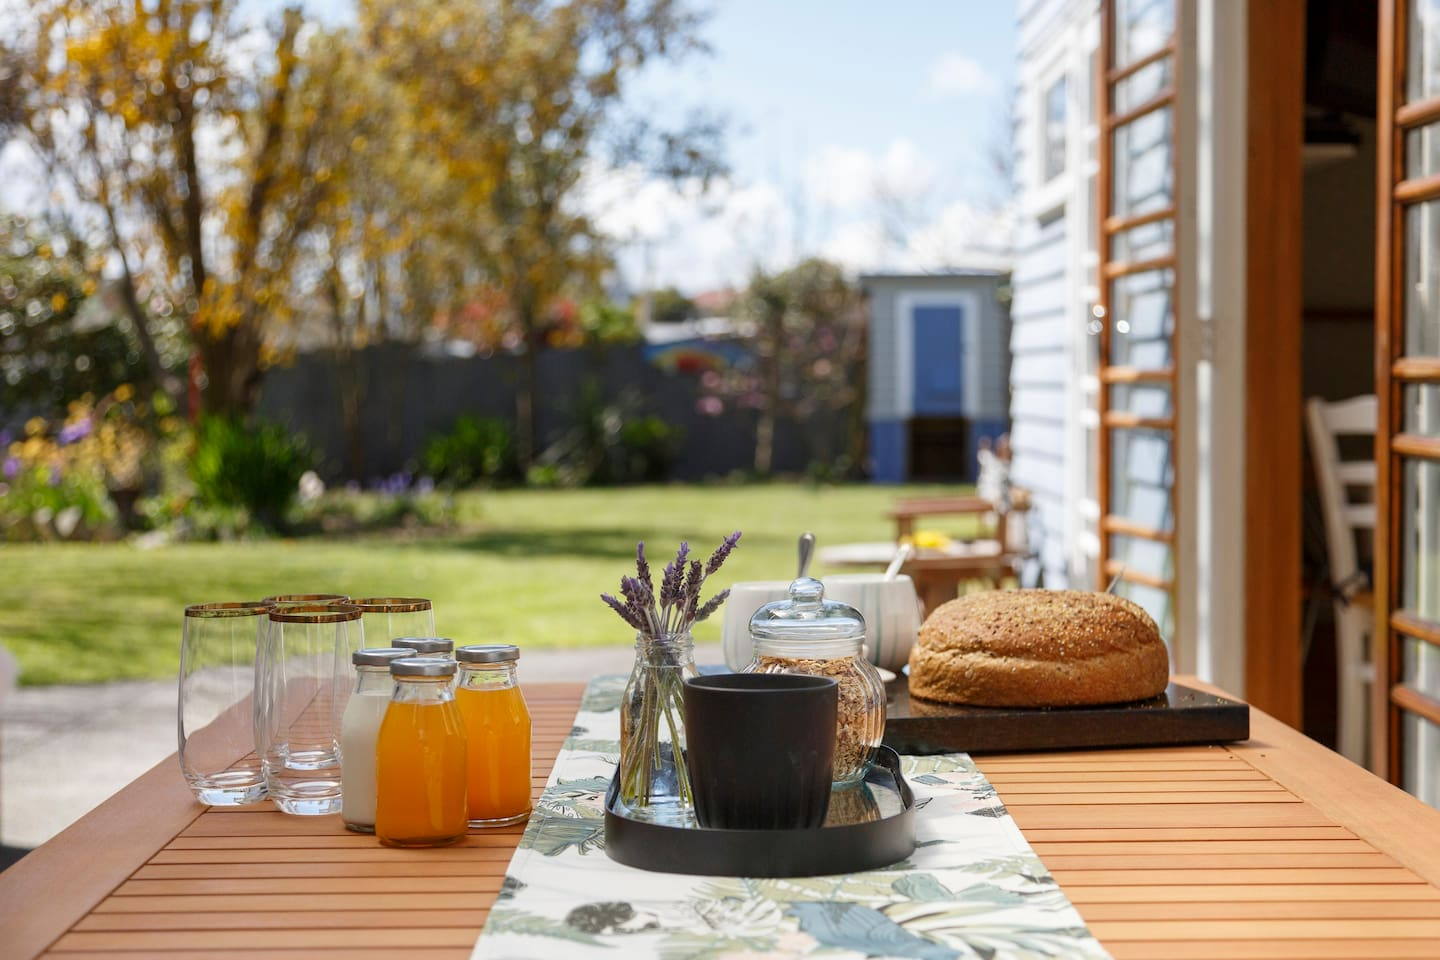 Have  your breakfast inside or outside. Enjoy the peace and the views from your covered courtyard.